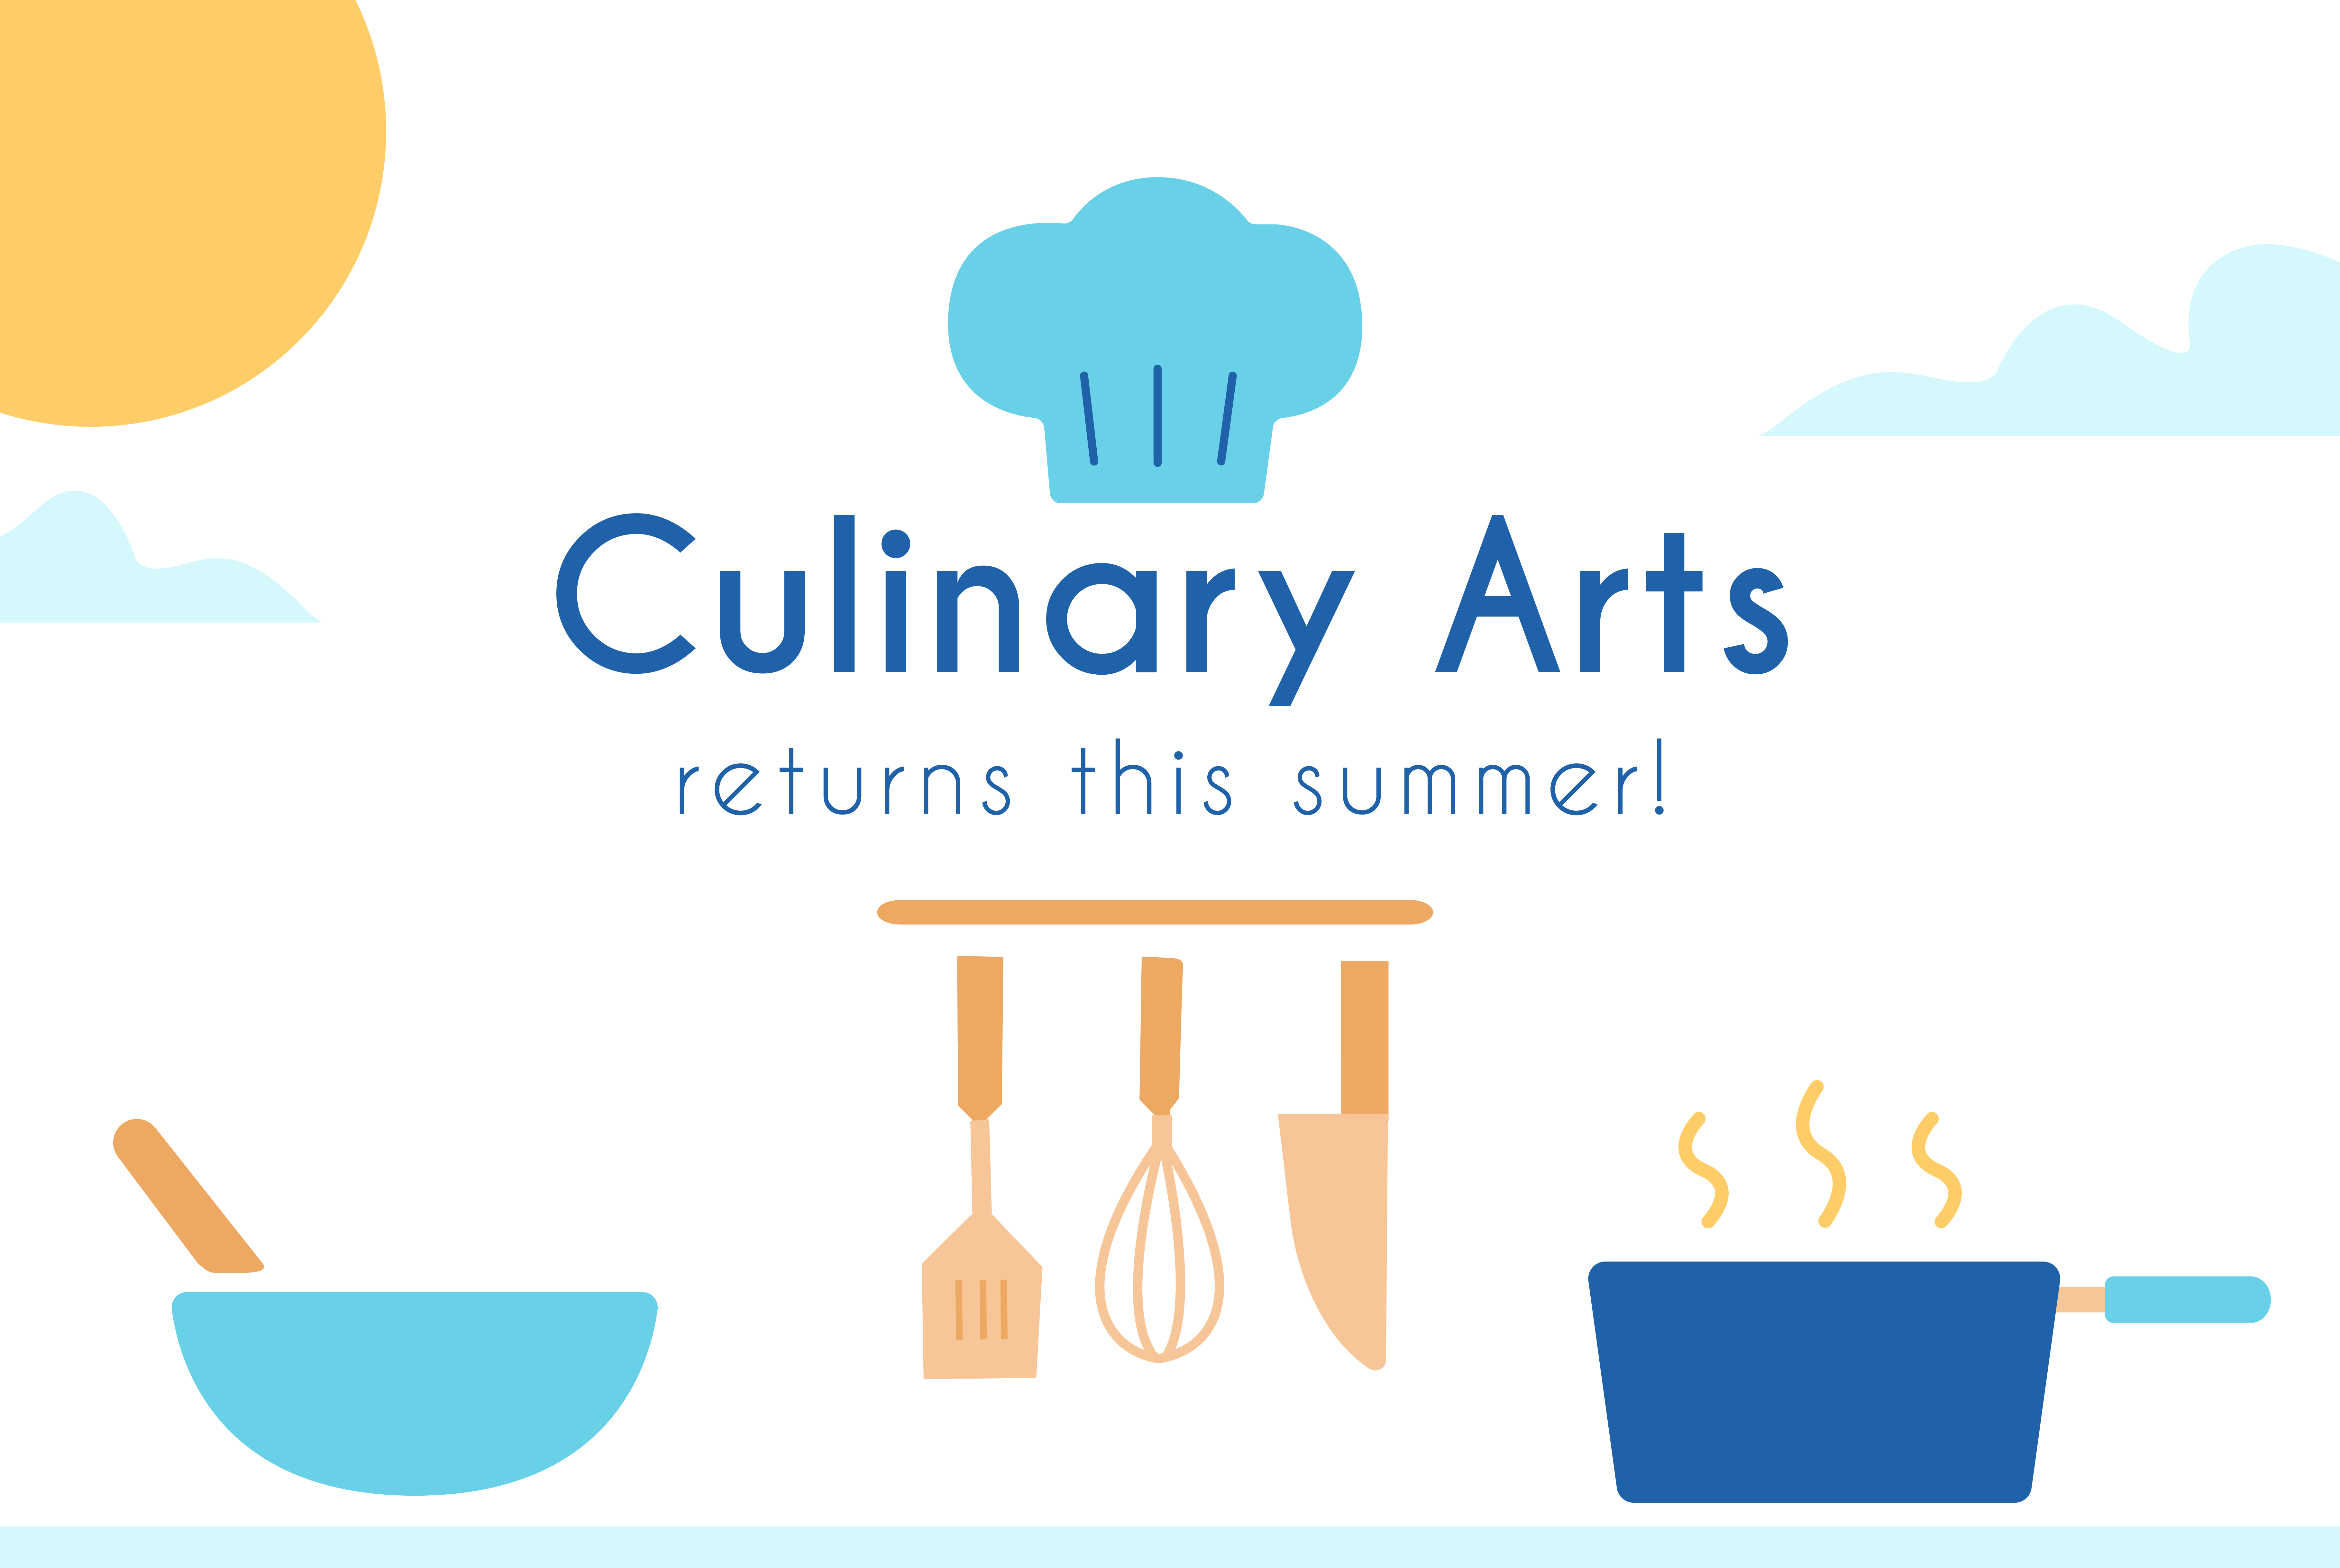 """A cartoon image of kitchen tools and a chef half over text that says """"Culinary Arts returns this summer!"""""""